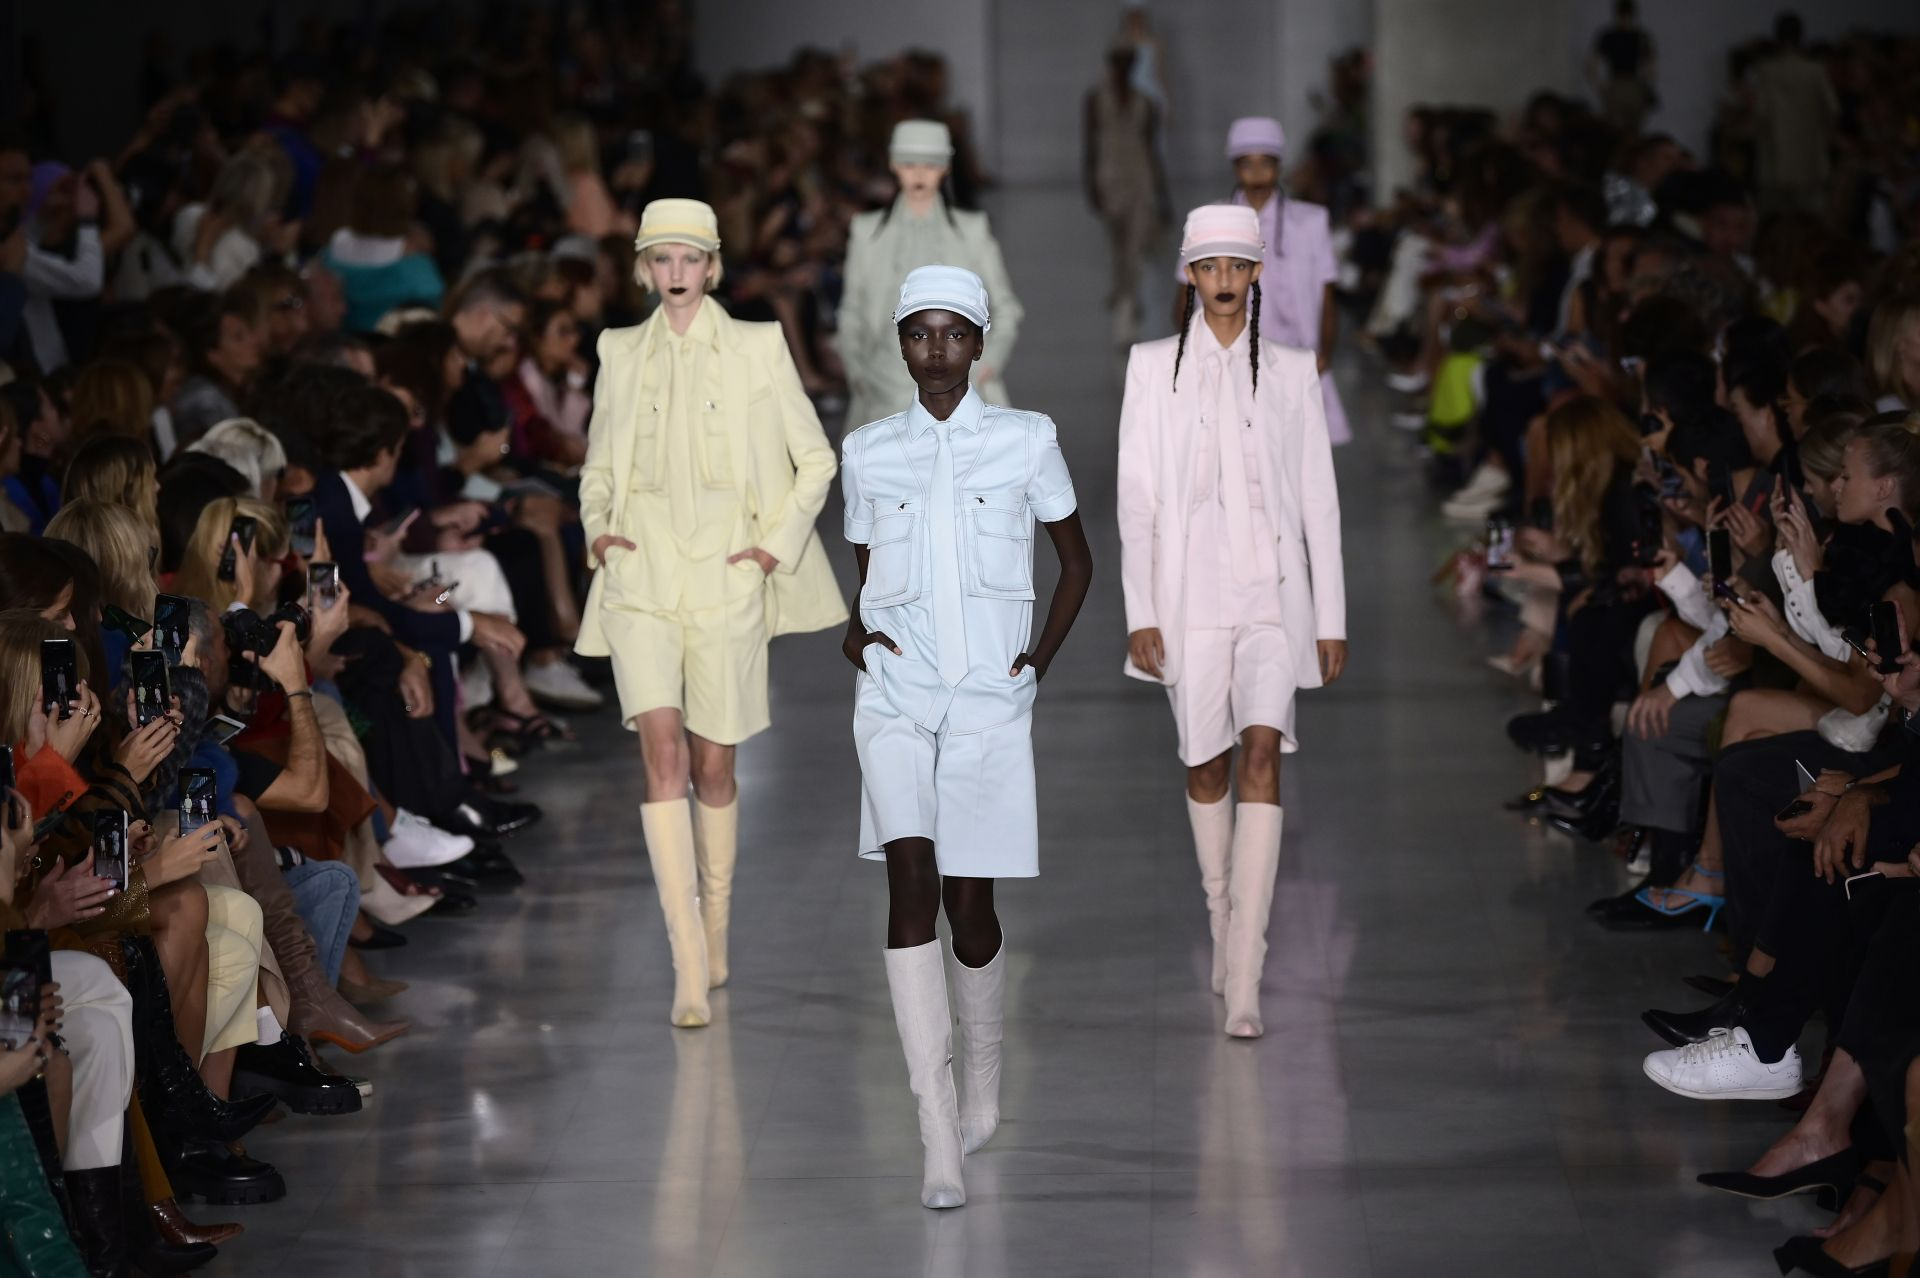 Models present creations during the Max Mara Spring/Summer 2020 fashion show on September 19, 2019 in Milan. (Photo by MARCO BERTORELLO / AFP)